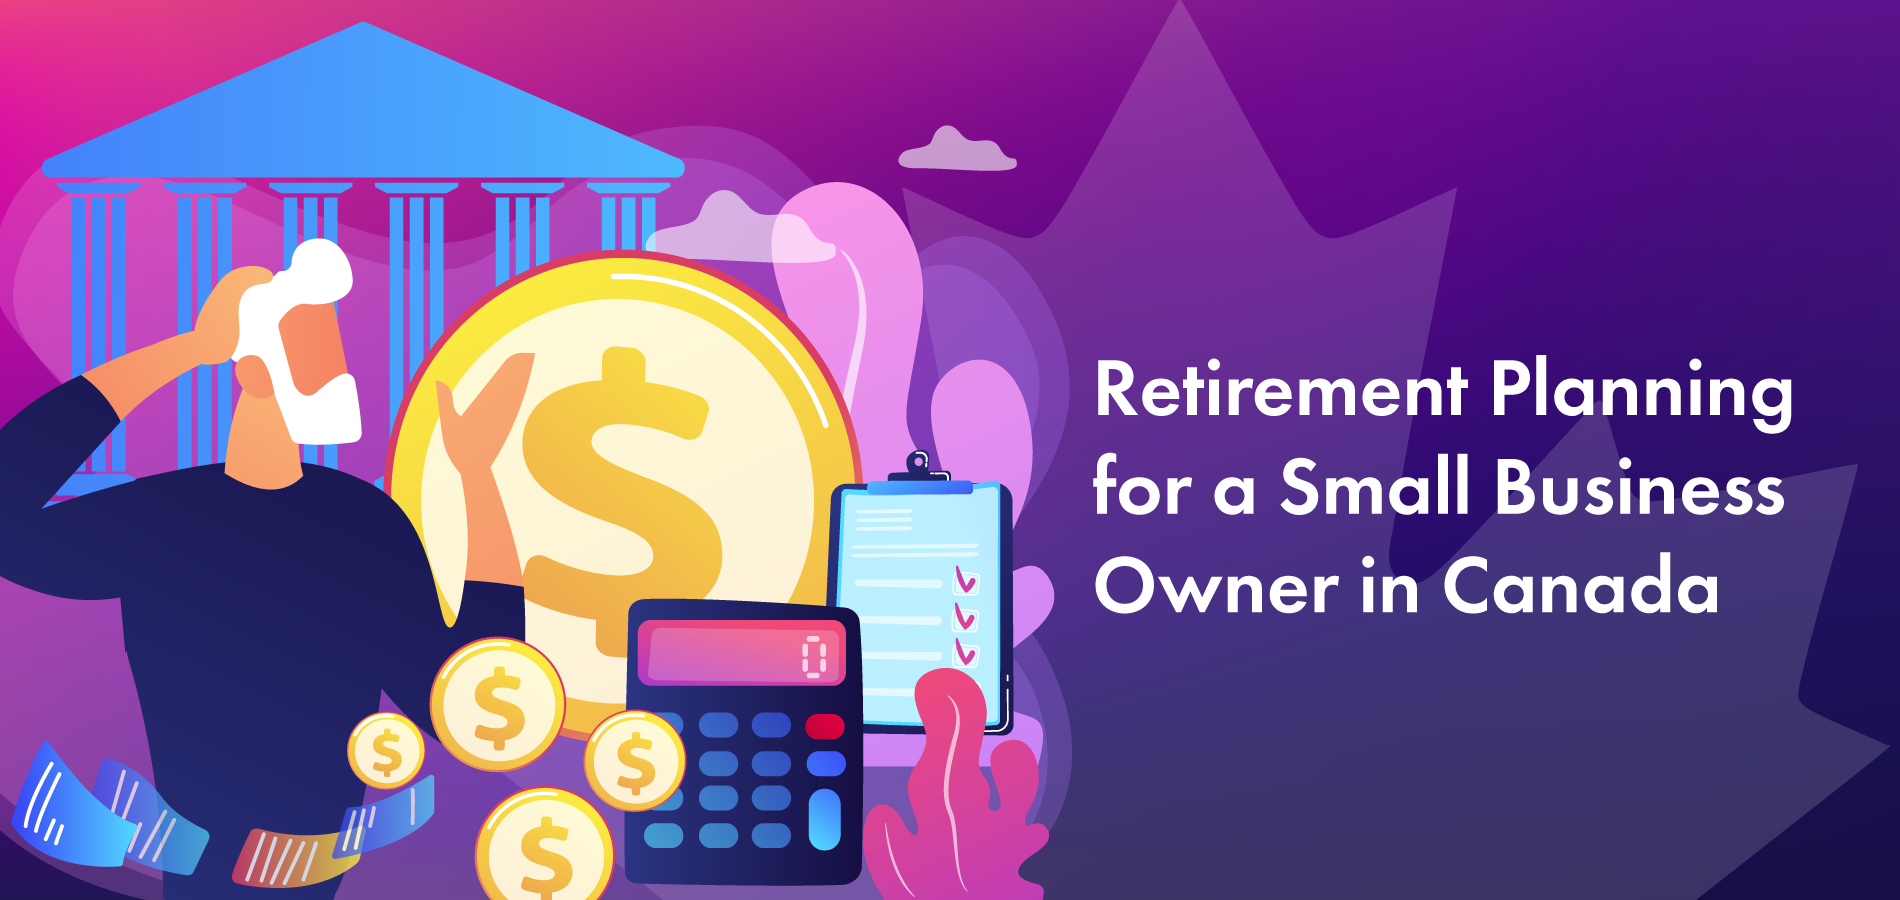 Retirement Planning for a Small Business Owner in Canada